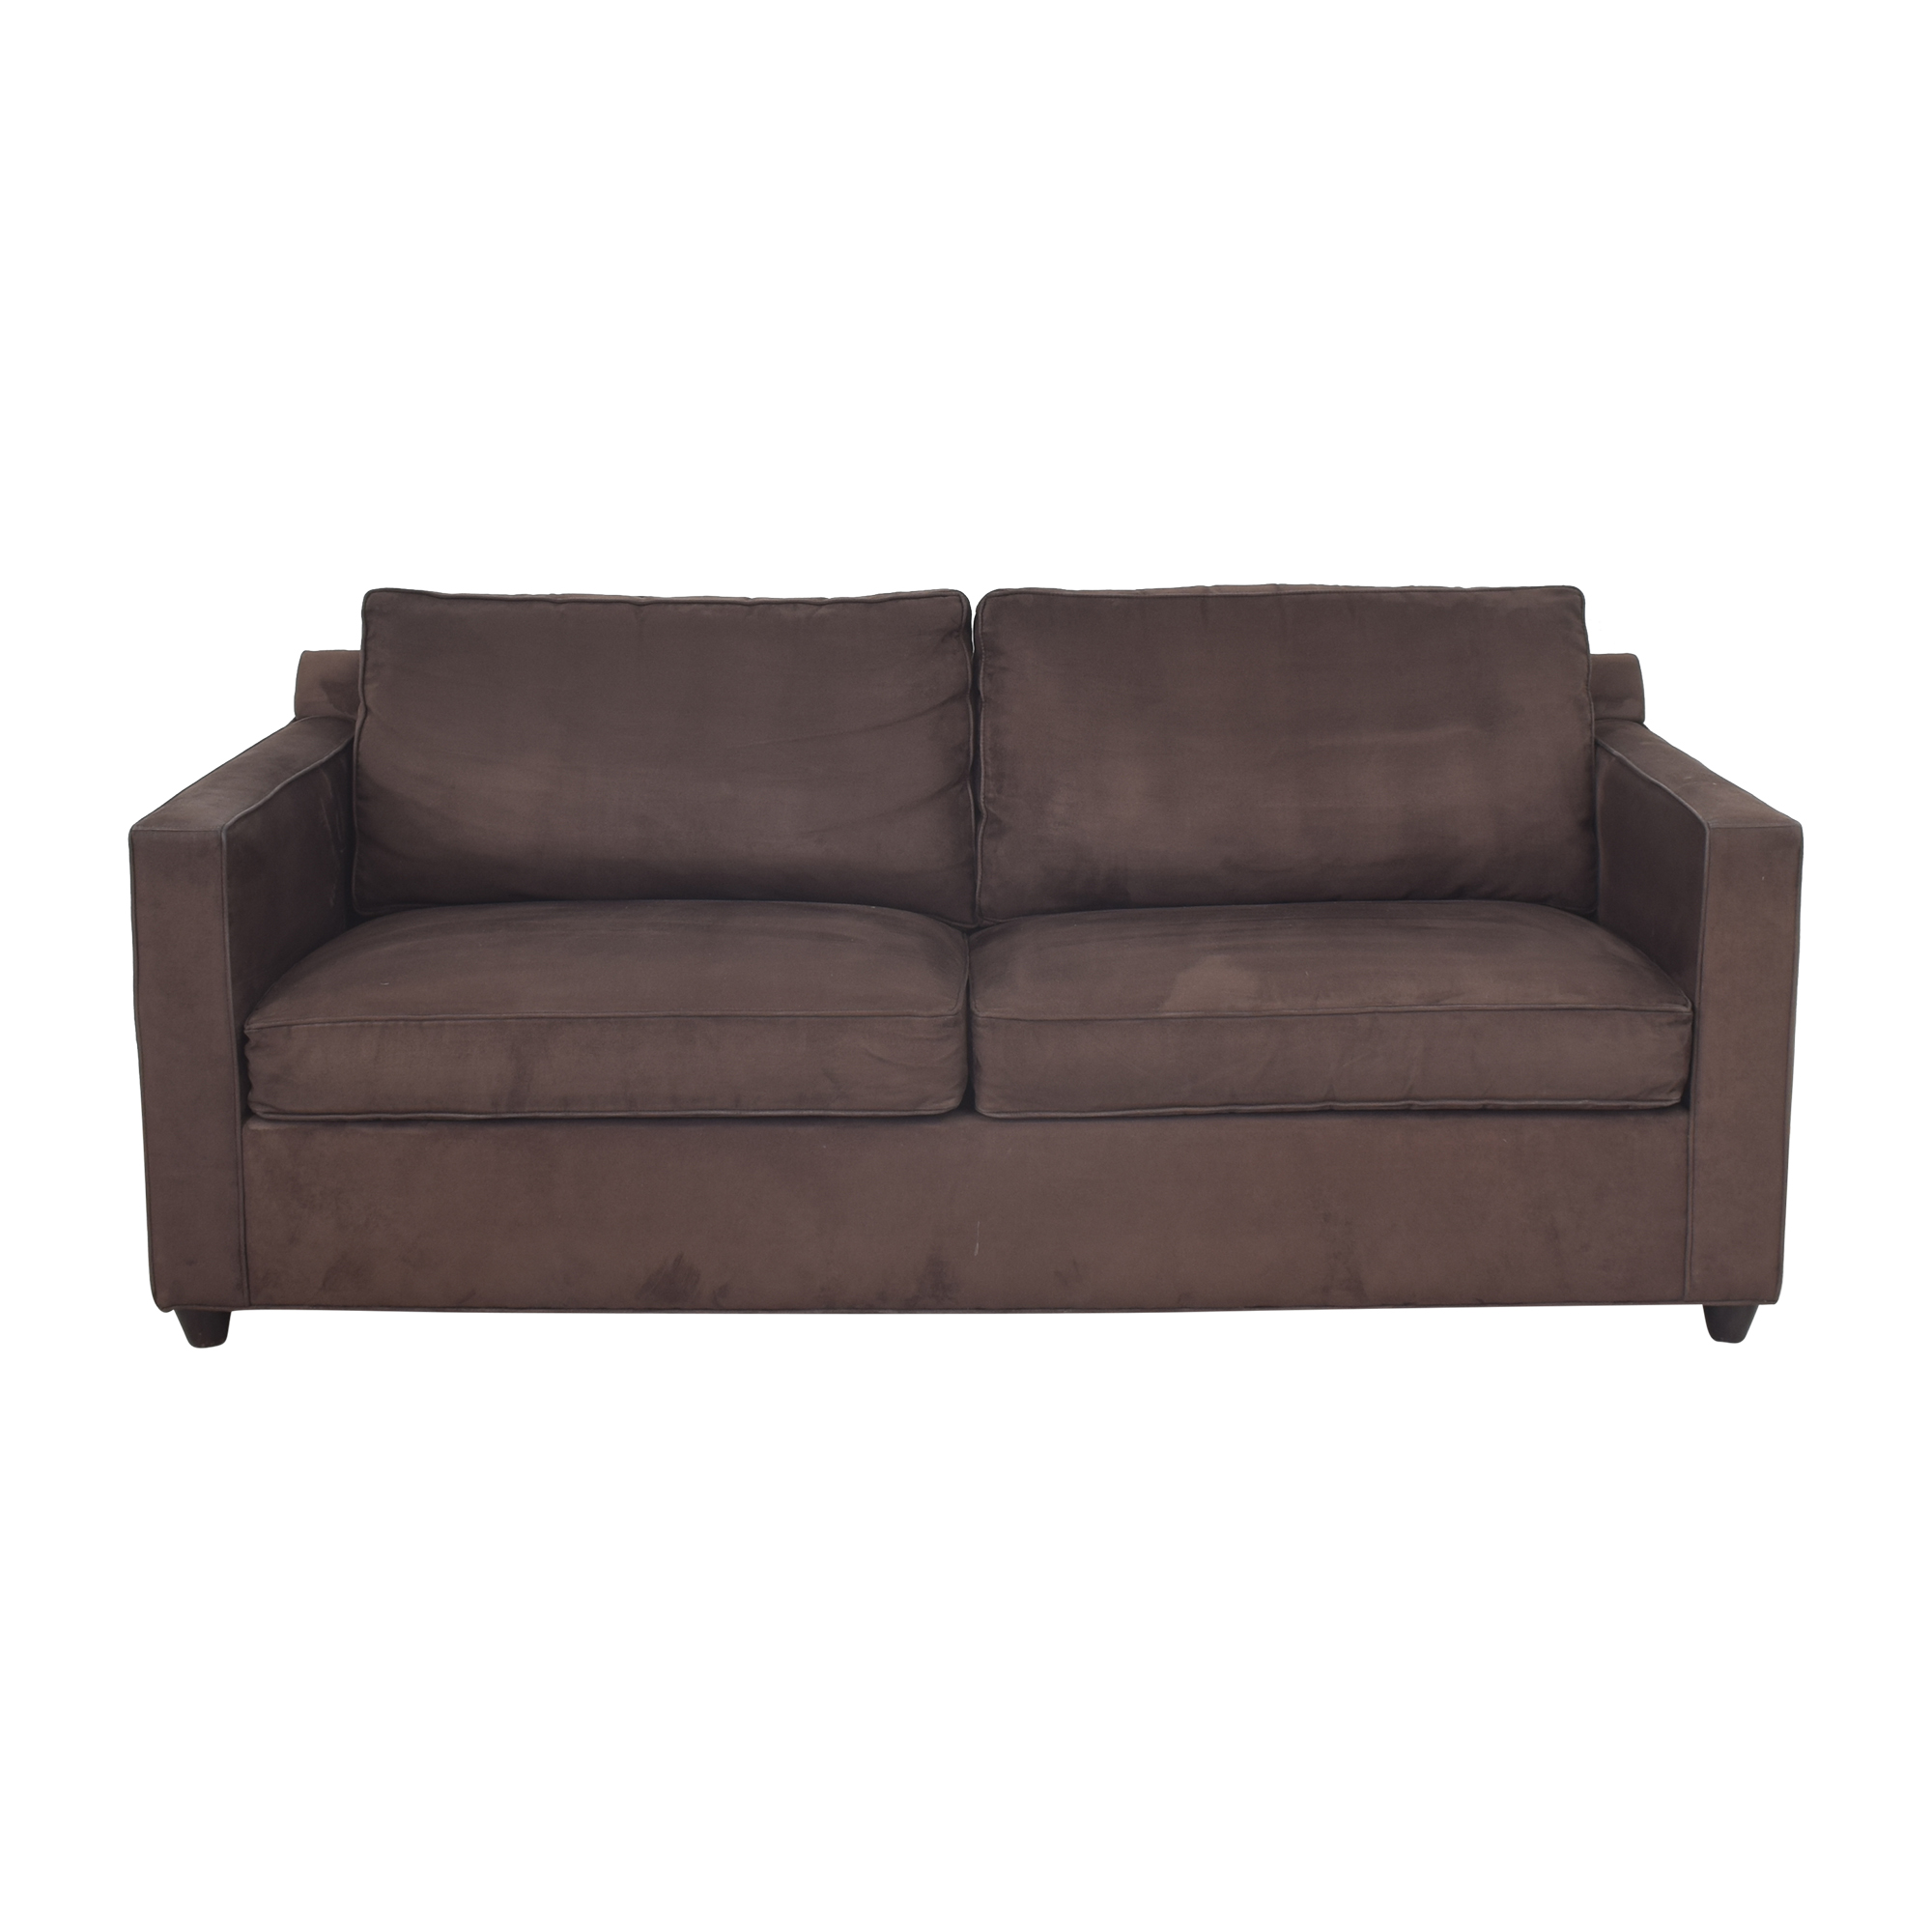 Crate & Barrel Crate & Barrel Two Cushion Sofa with Storage Ottoman dimensions